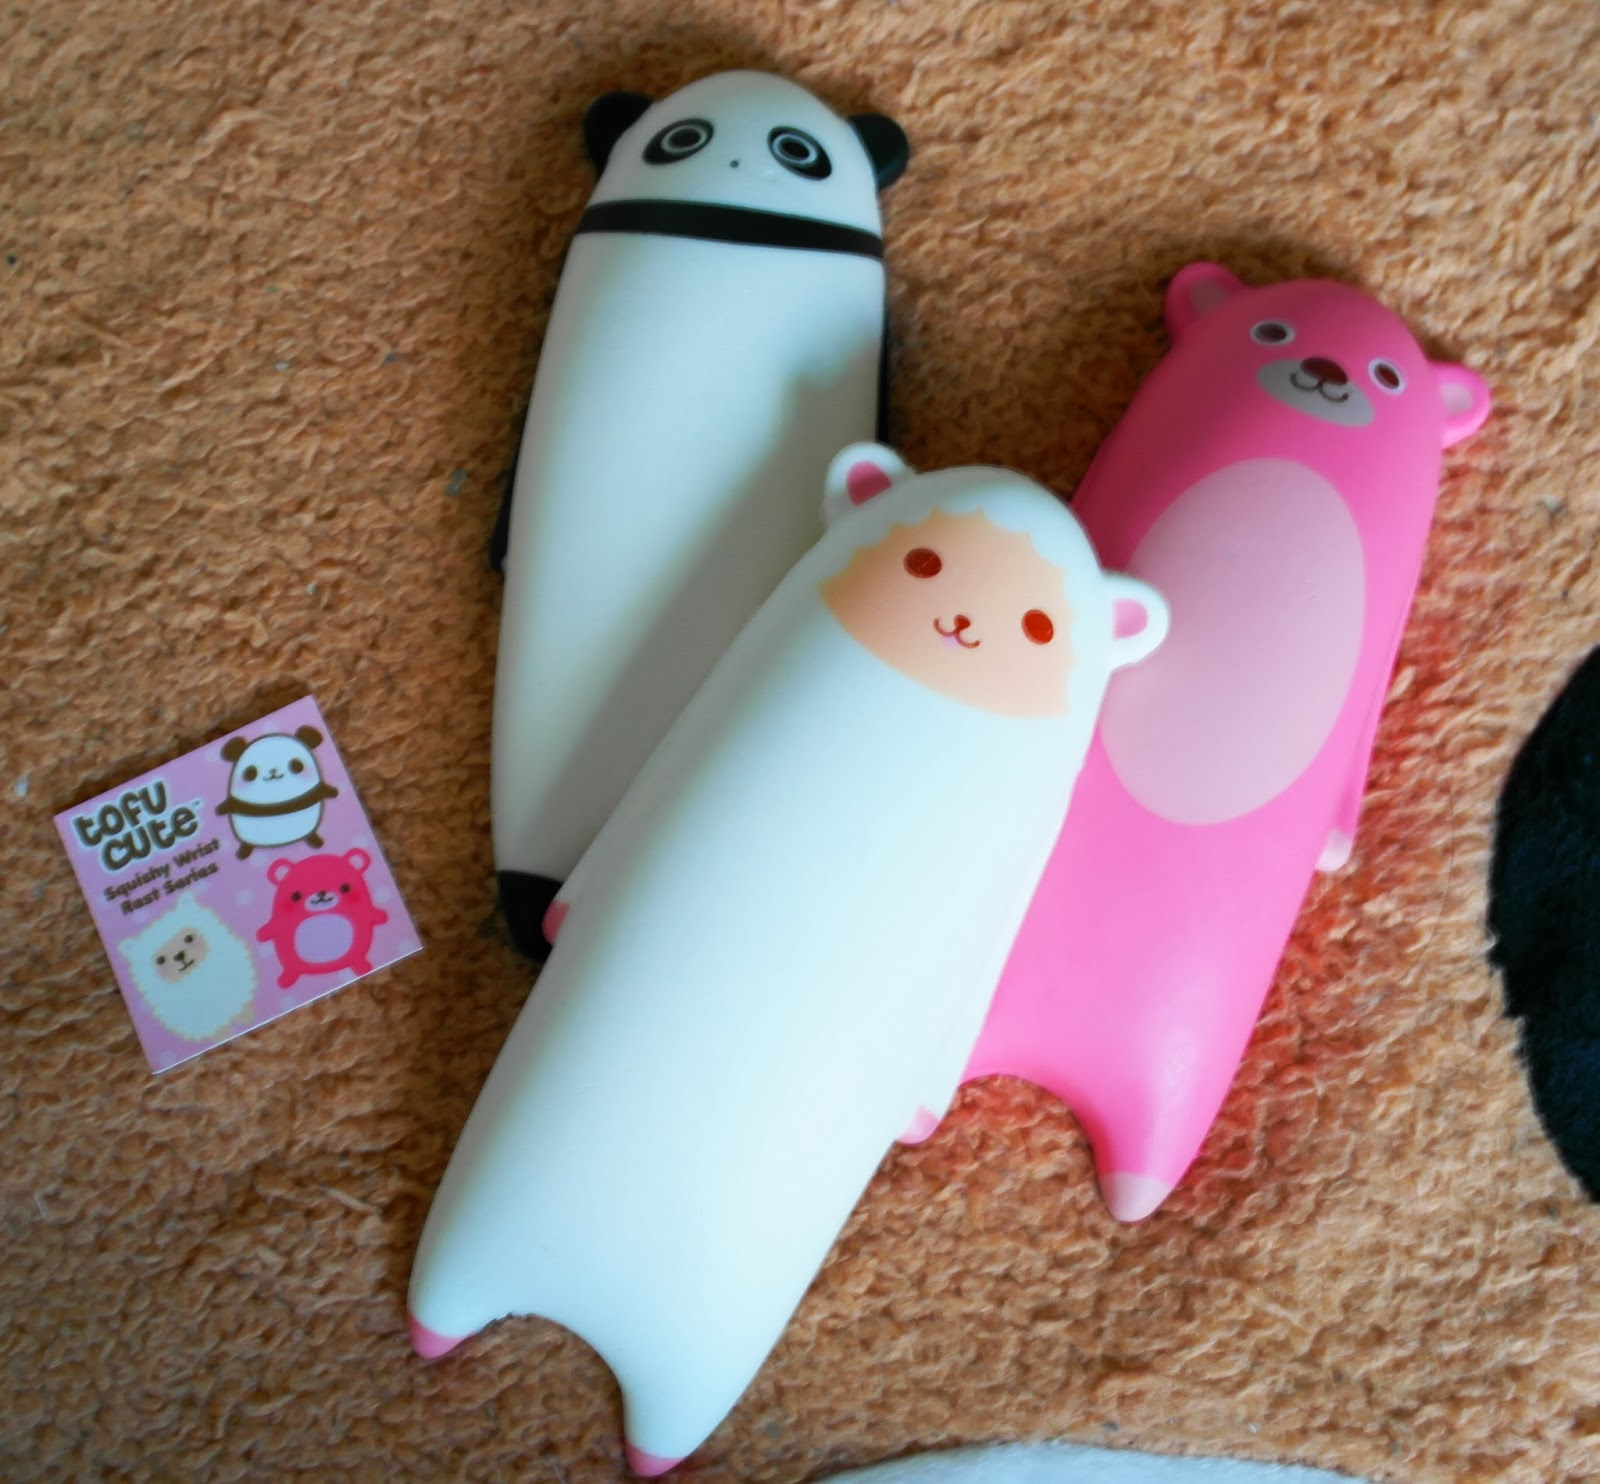 Kawaii Squishy Animal Wrist Rest : Tofu Cute Official Blog: New Squishy Items